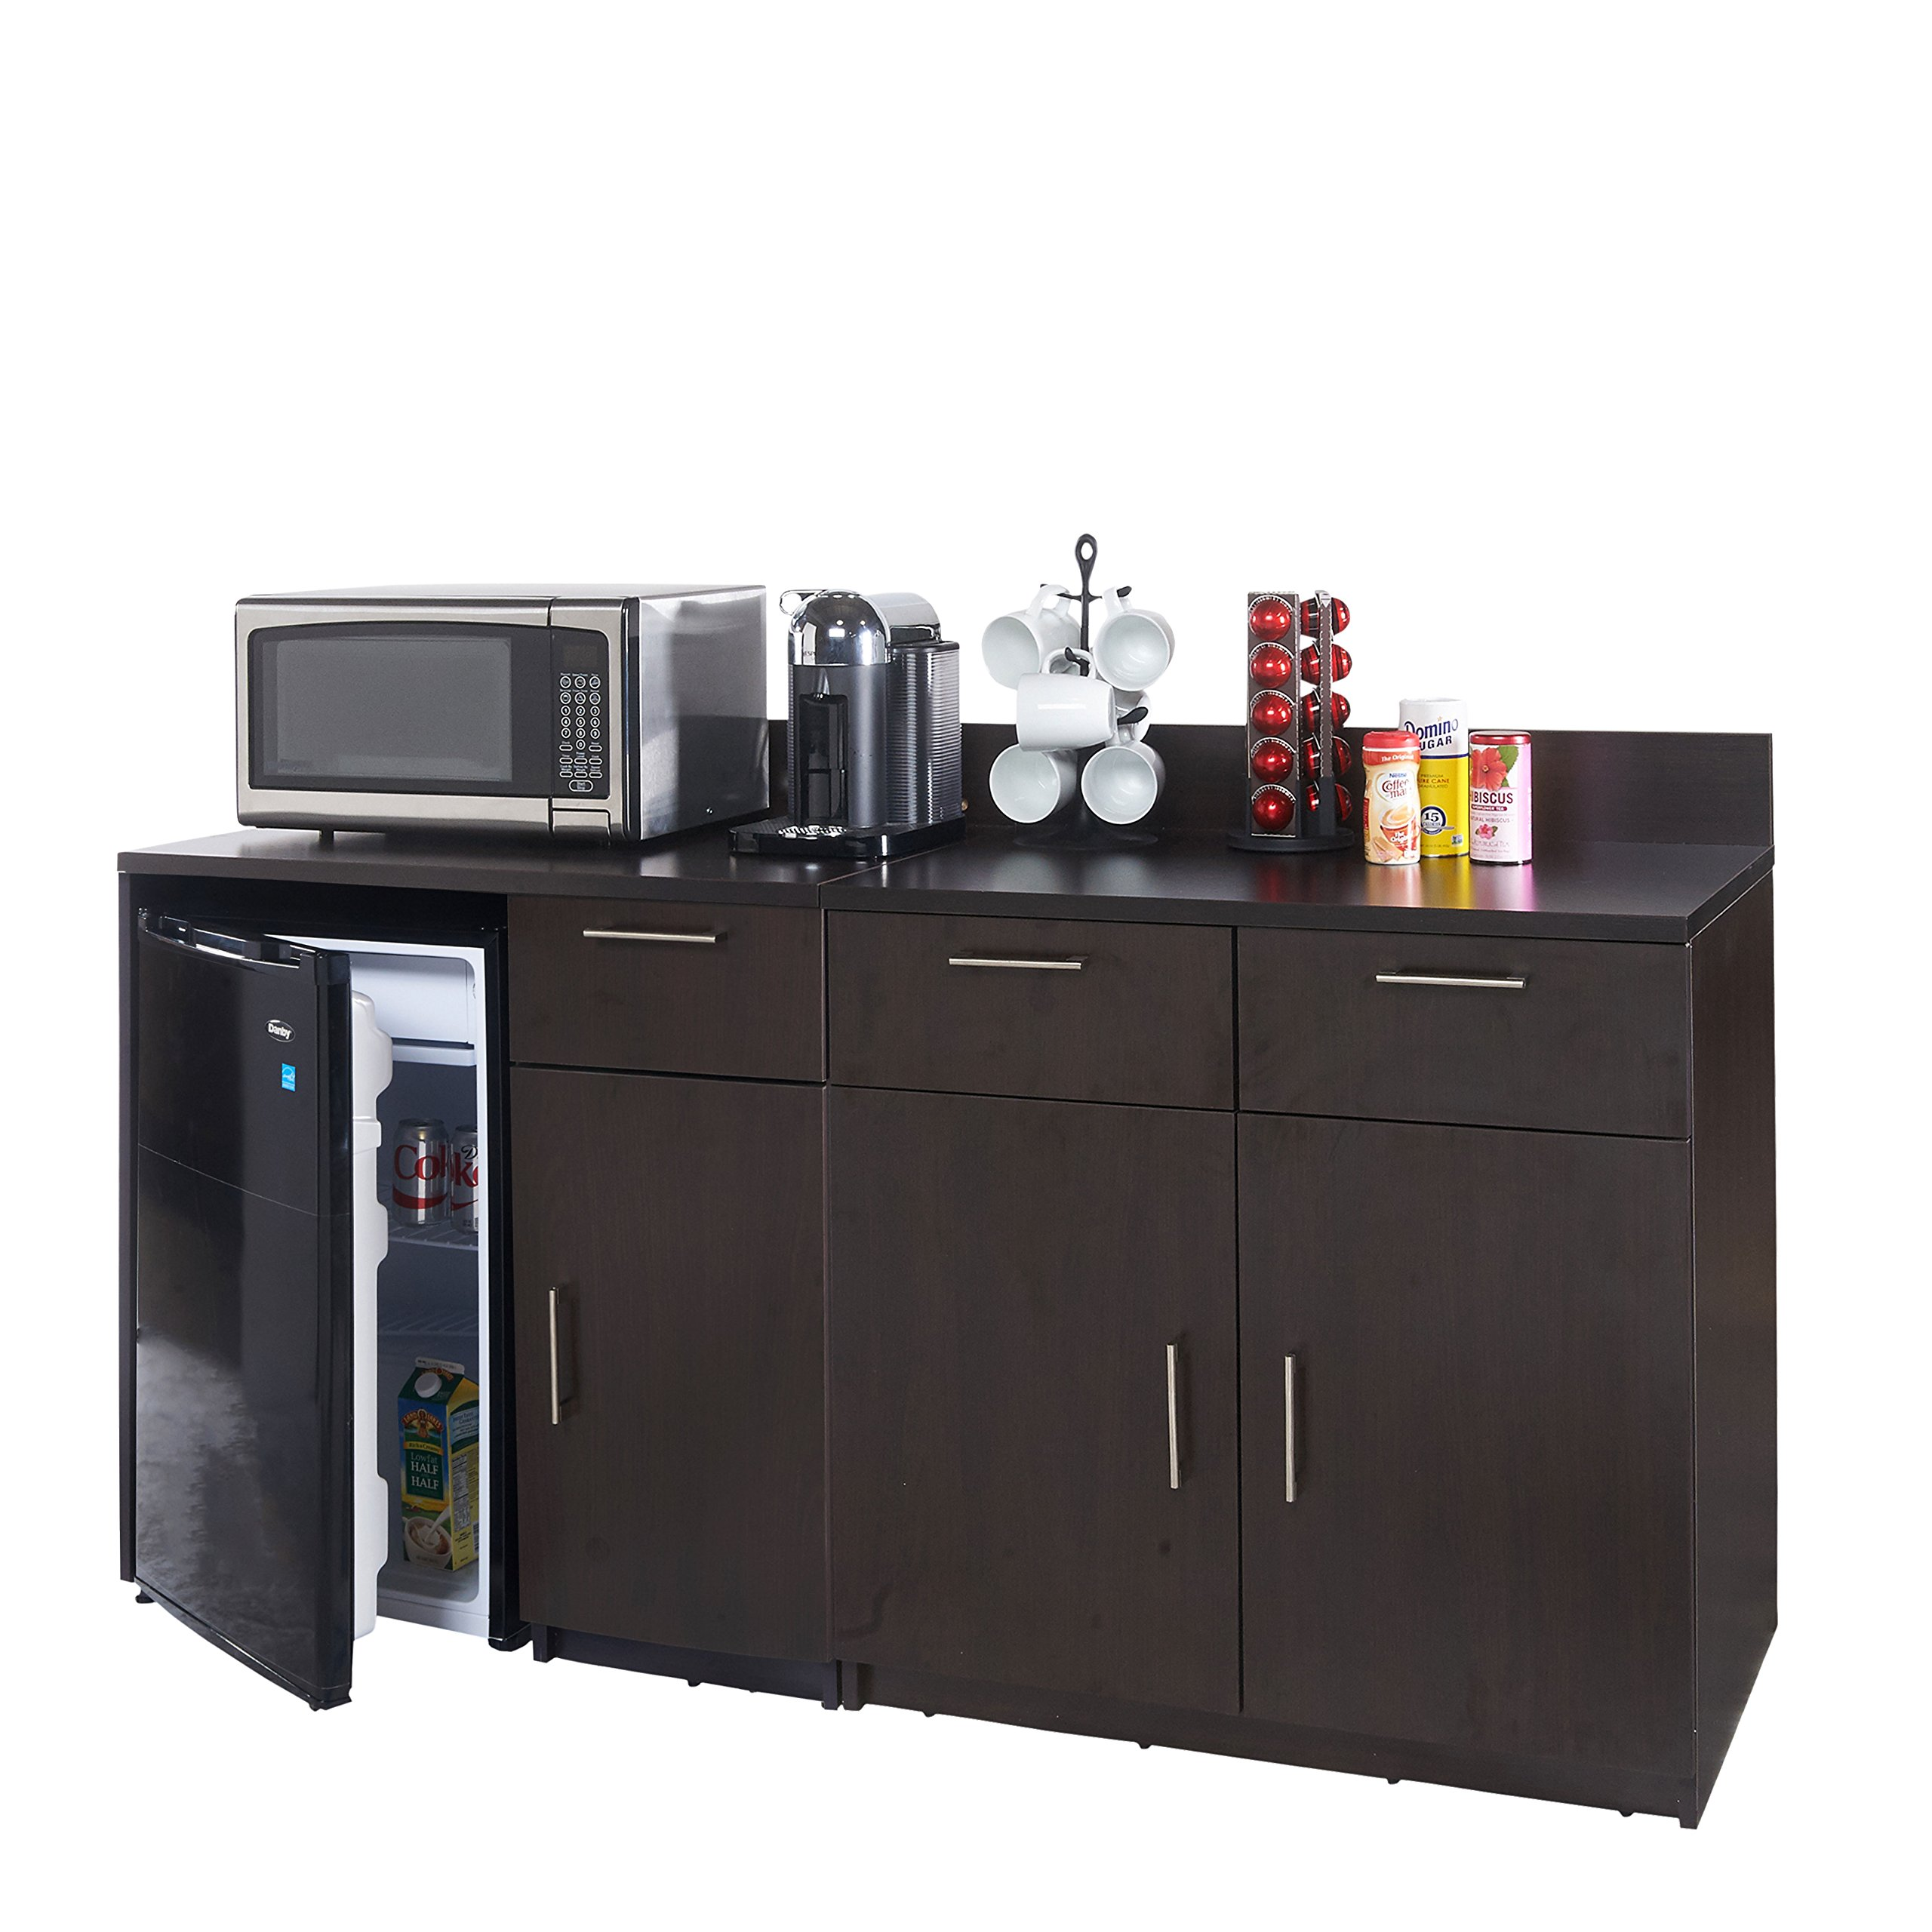 Breaktime 2 Piece 3271 Coffee Kitchen Lunch Break Room Furniture Cabinets Fully Assembled Ready to Use, Instantly Create your New Break Room, Espresso